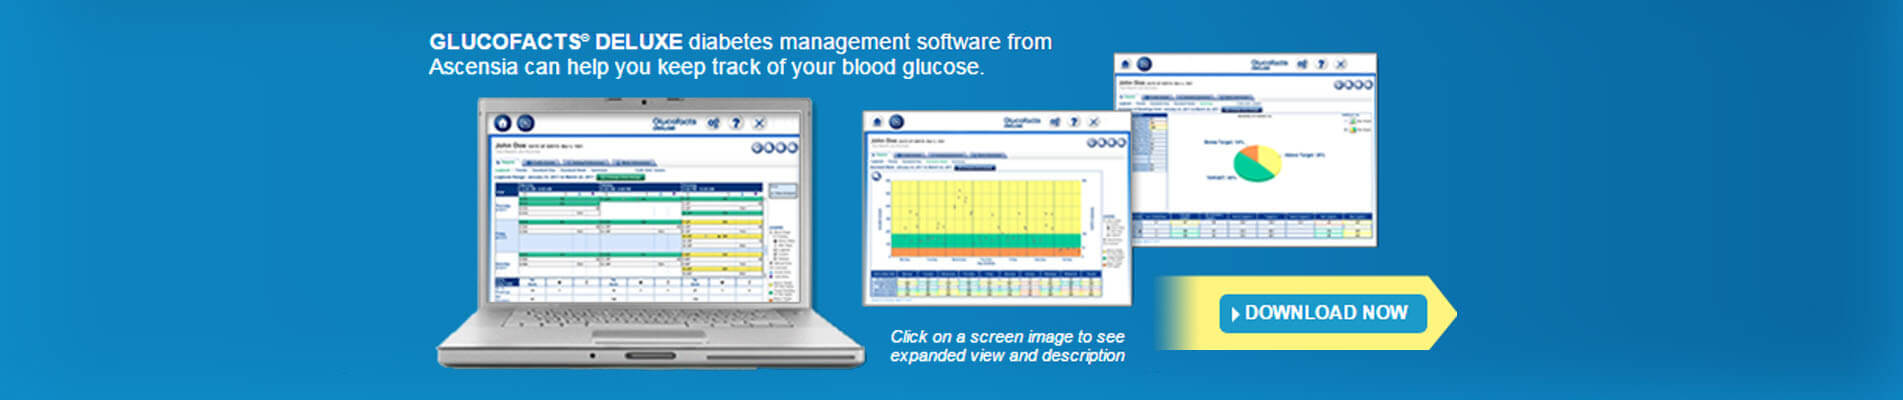 Glucofacts Deluxe allows you to quickly and easily display and print all your information, with simple charts and graphs.